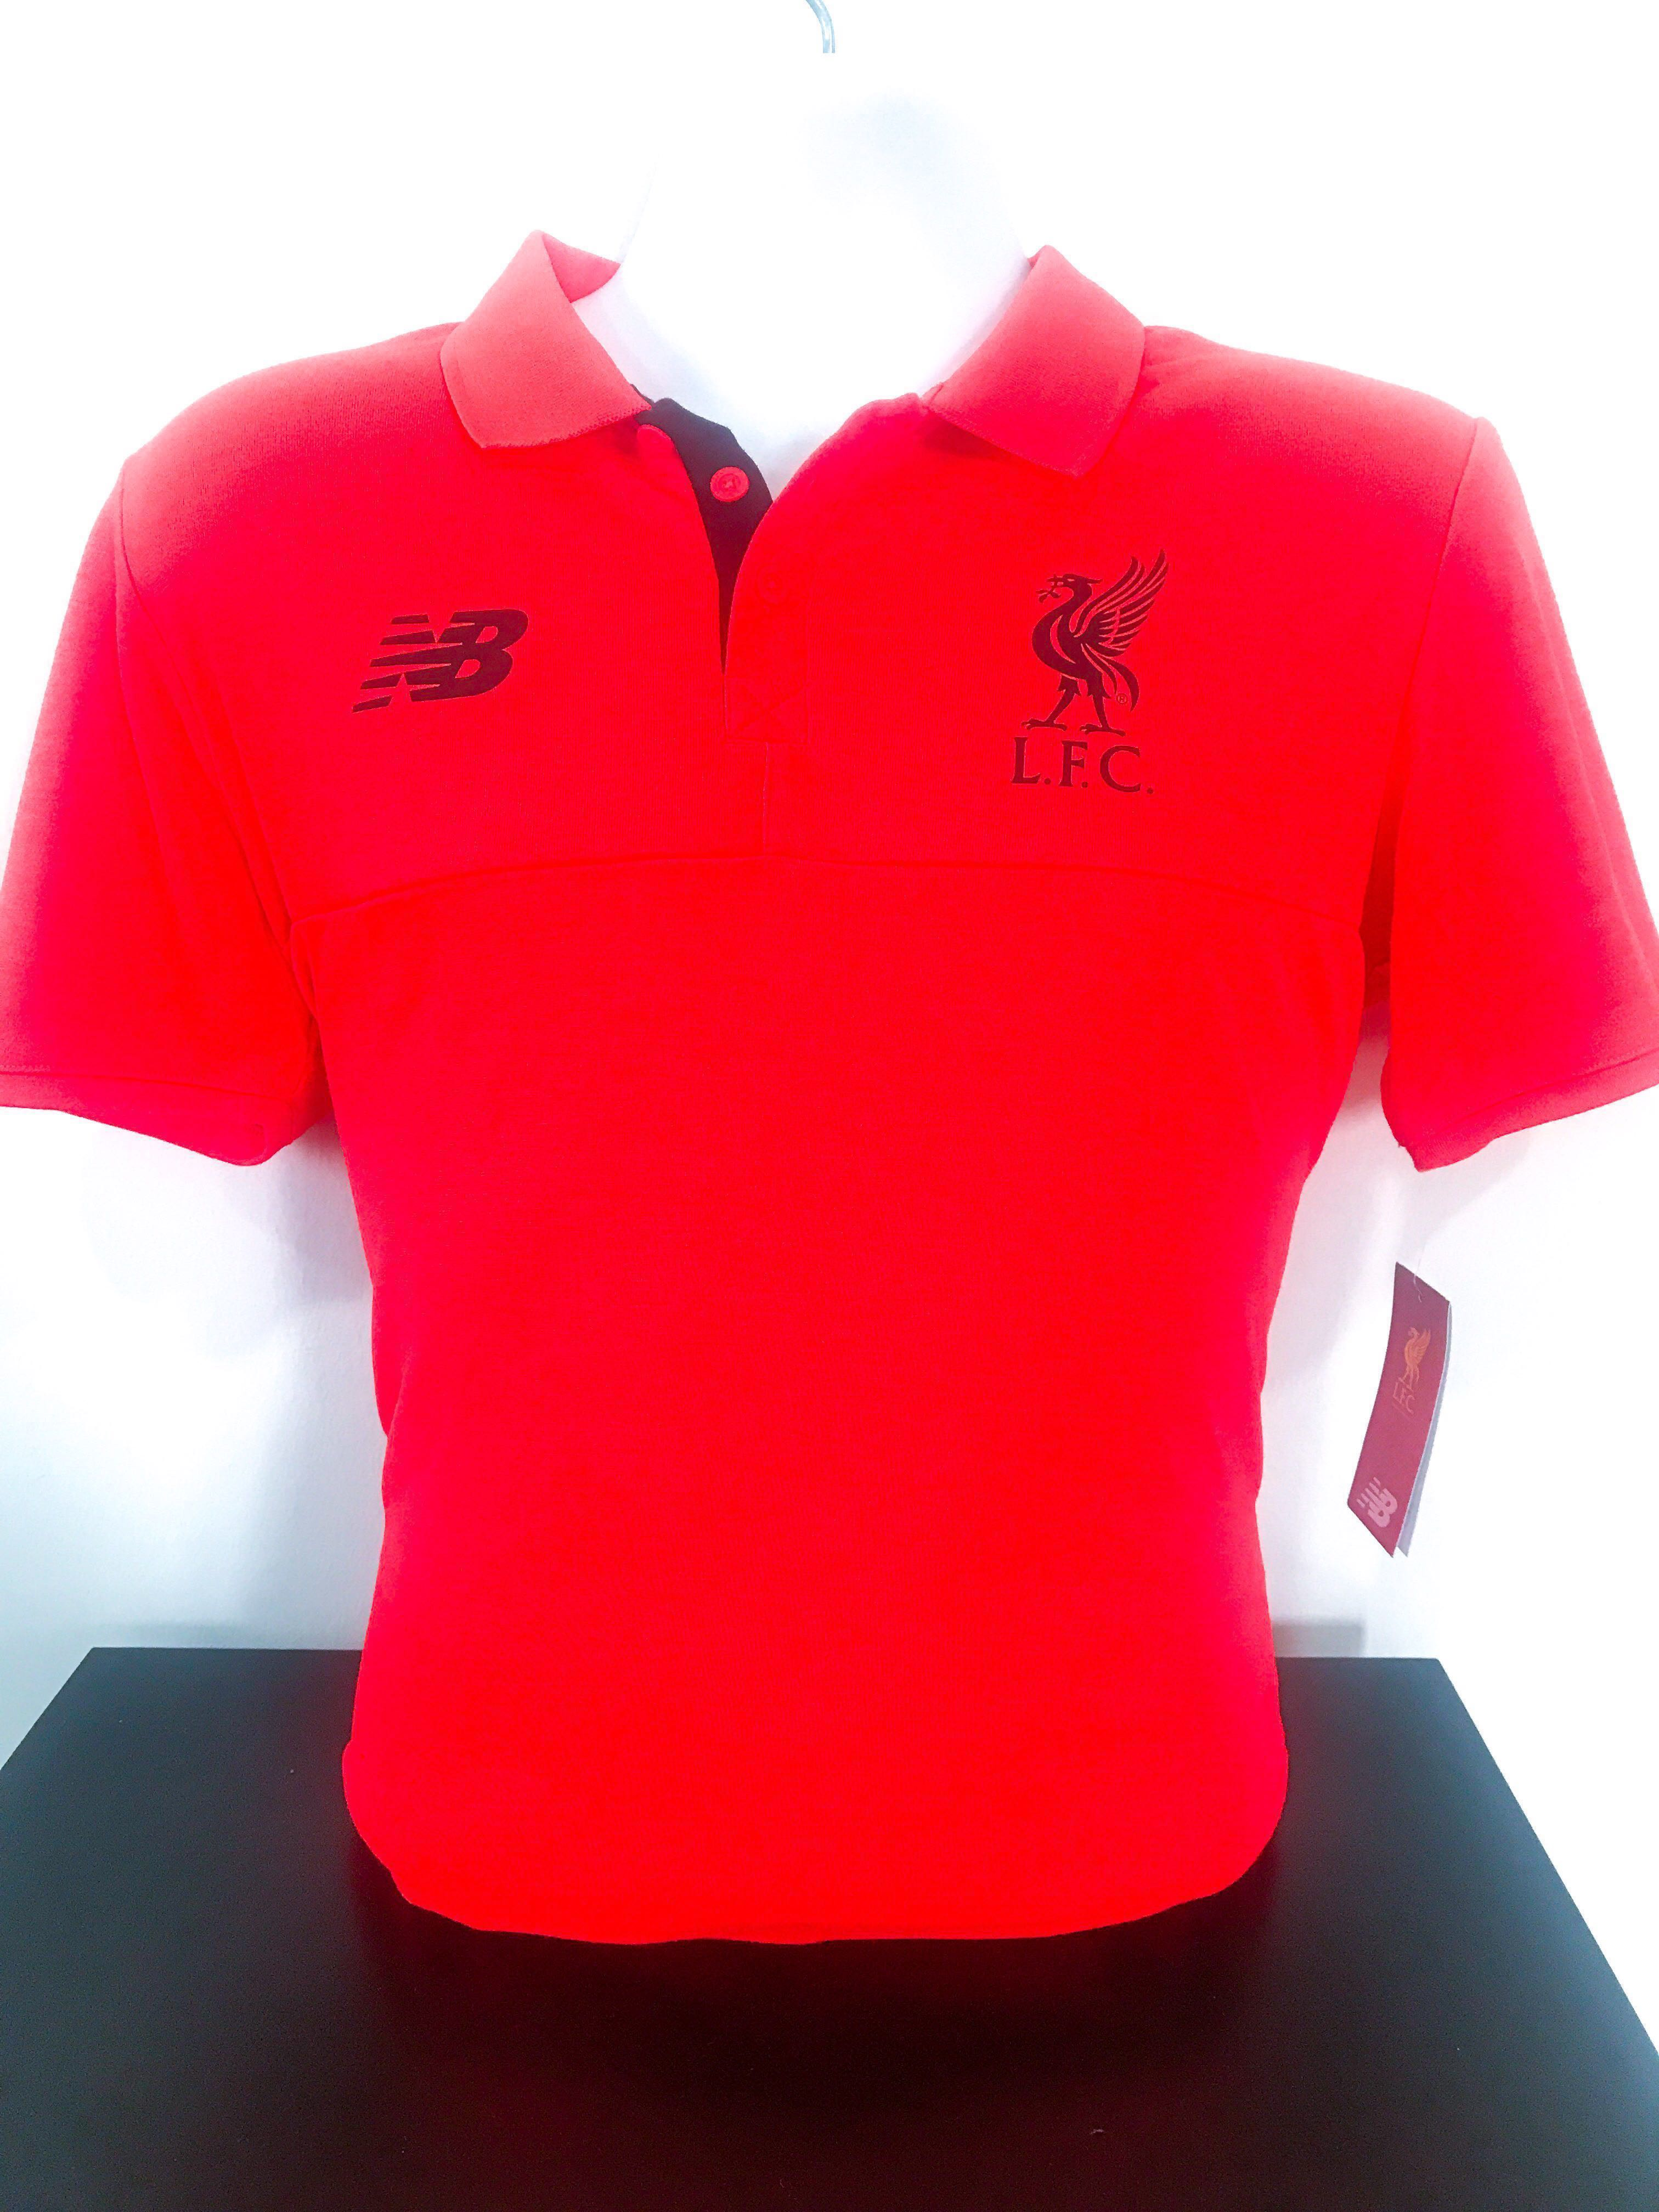 b9fddf9f3 🆕 Authentic Liverpool FC Polo Tee, Sports, Sports Apparel on Carousell